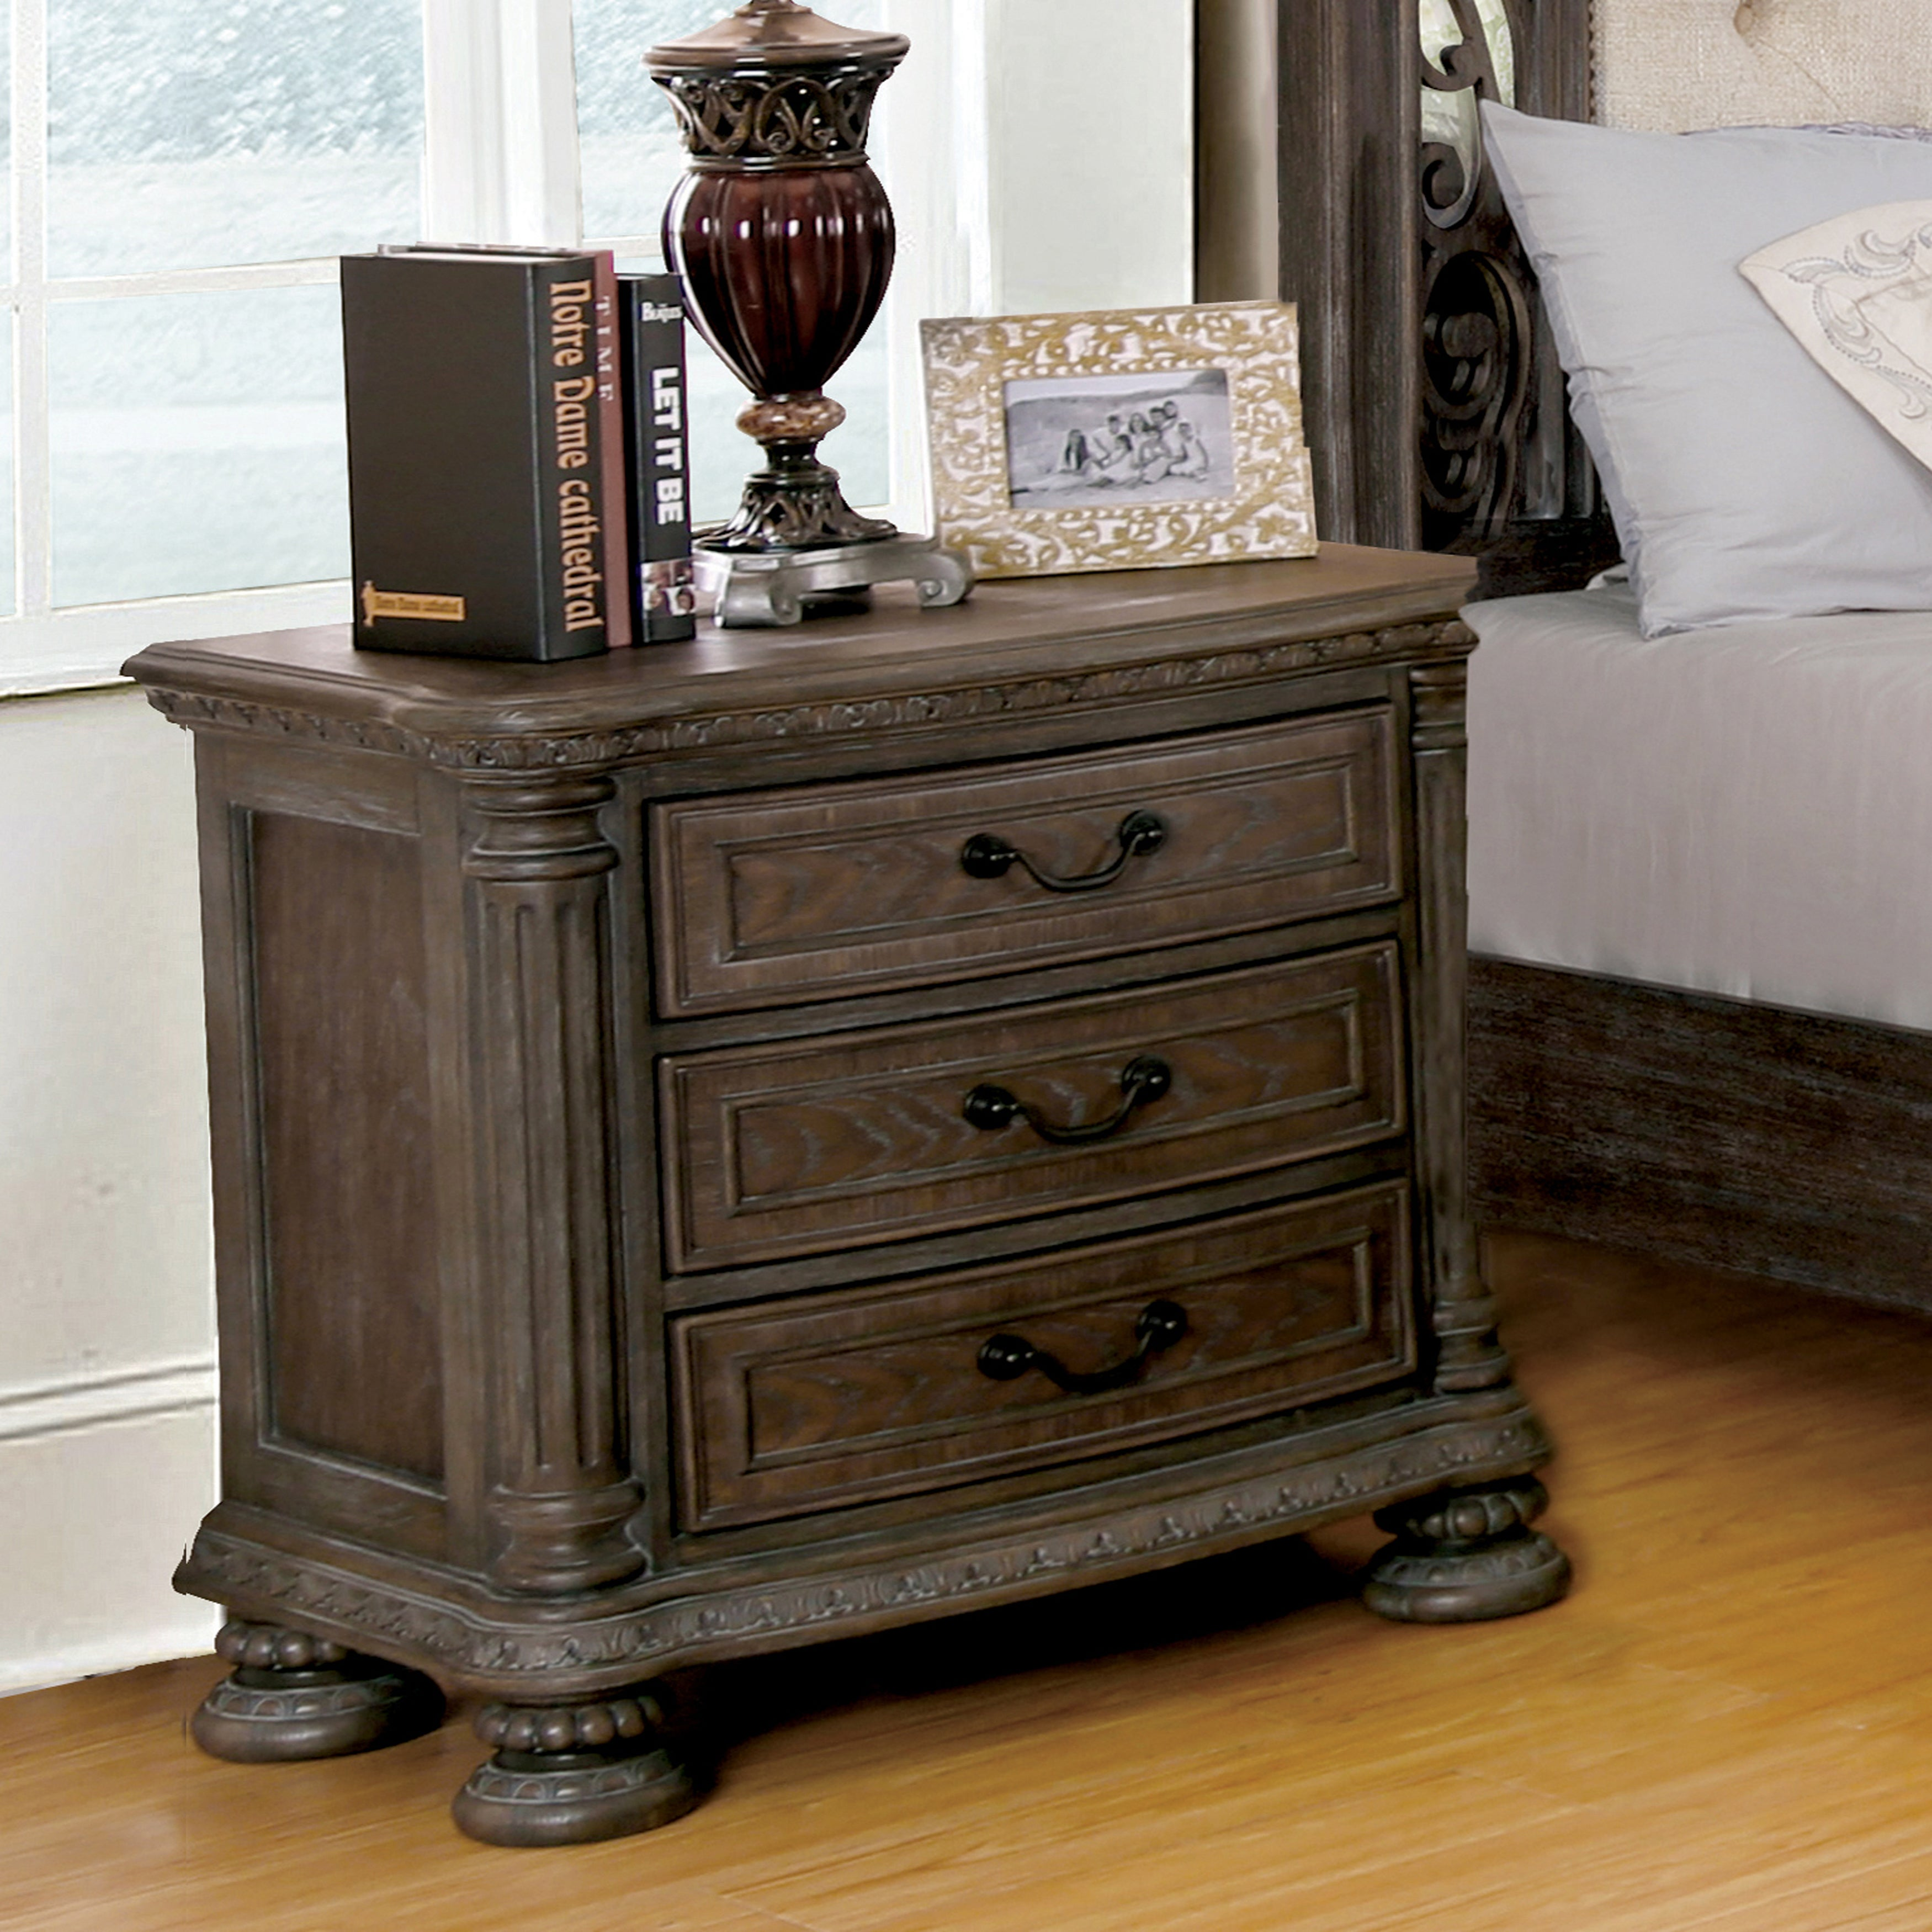 Furniture Of America Brigette III Traditional 4 Piece Ornate Rustic Sleigh  Bedroom Set   Free Shipping Today   Overstock.com   23109773